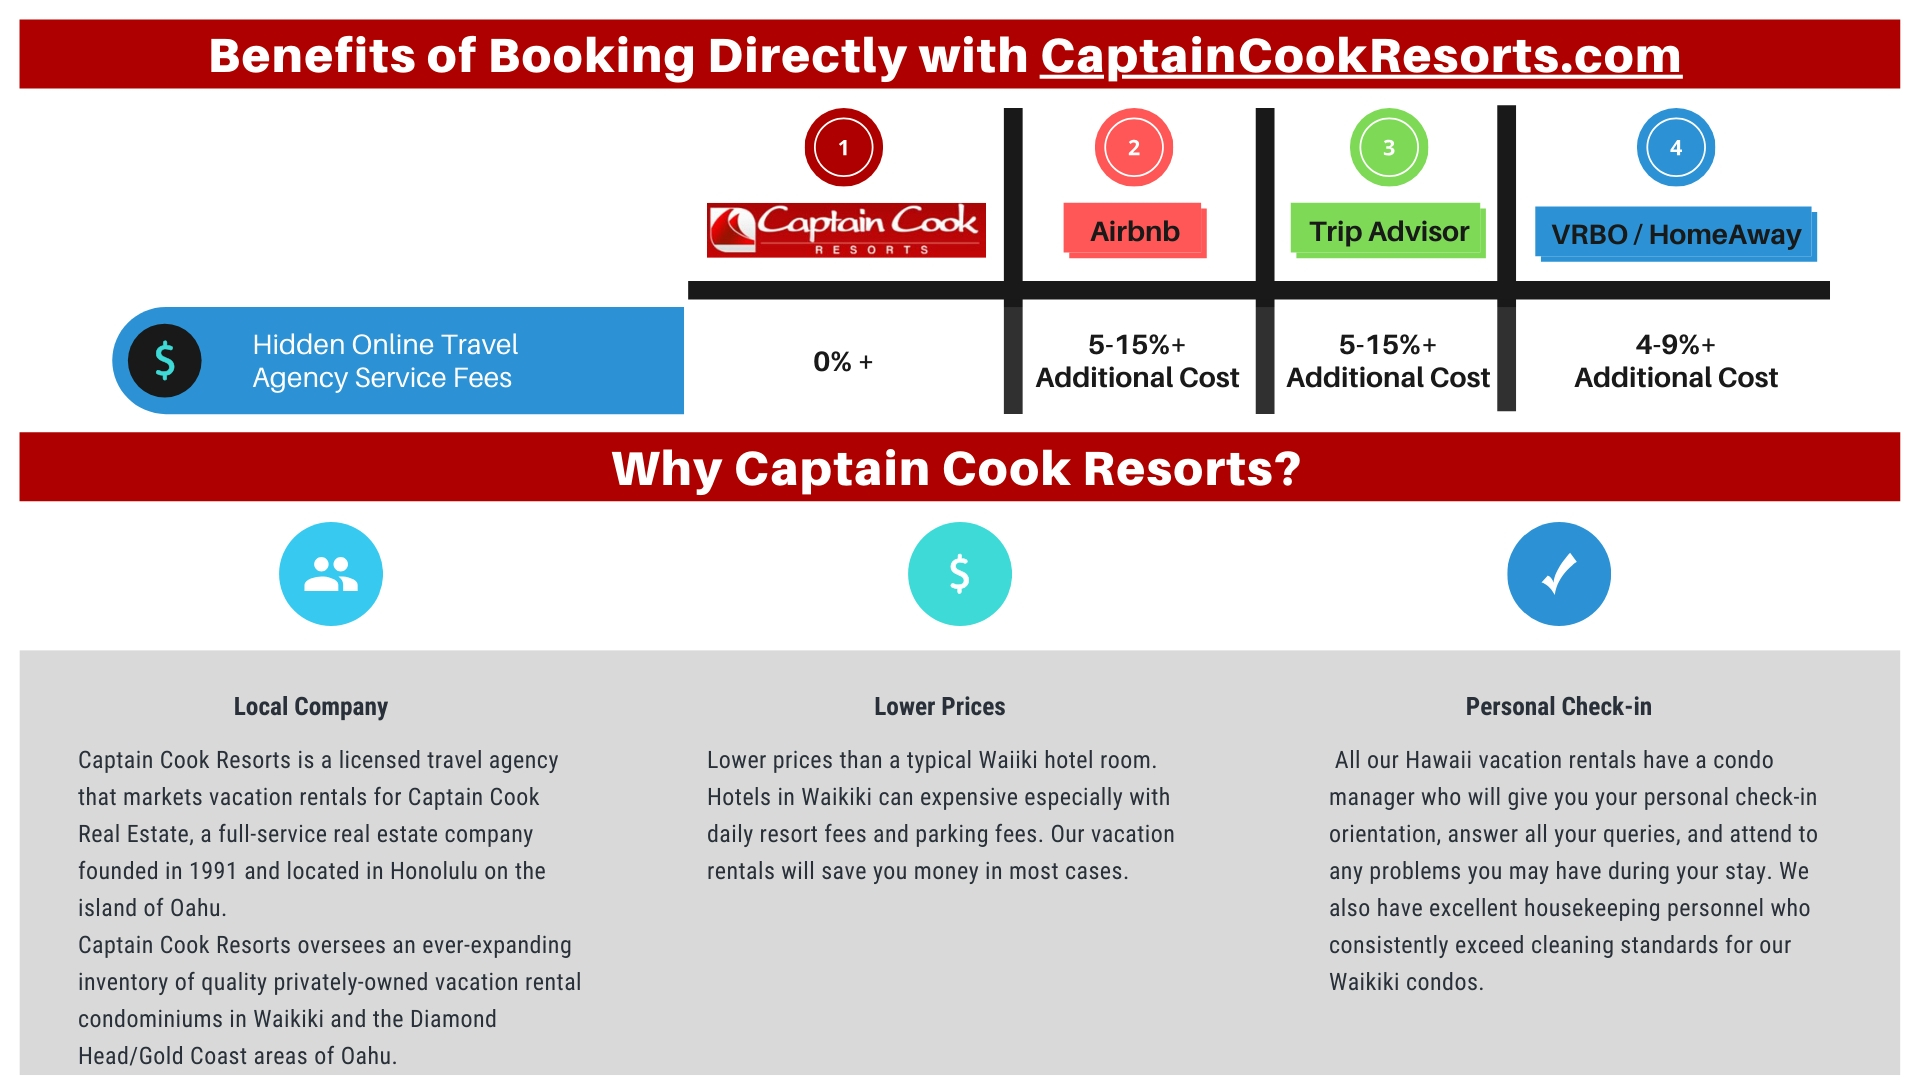 Benefits of Booking Directly with CaptainCookResorts.com